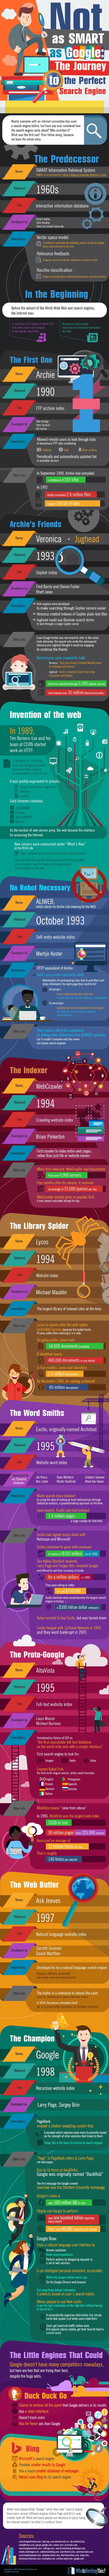 The Journey to the Perfect Search Engine [Infographic]